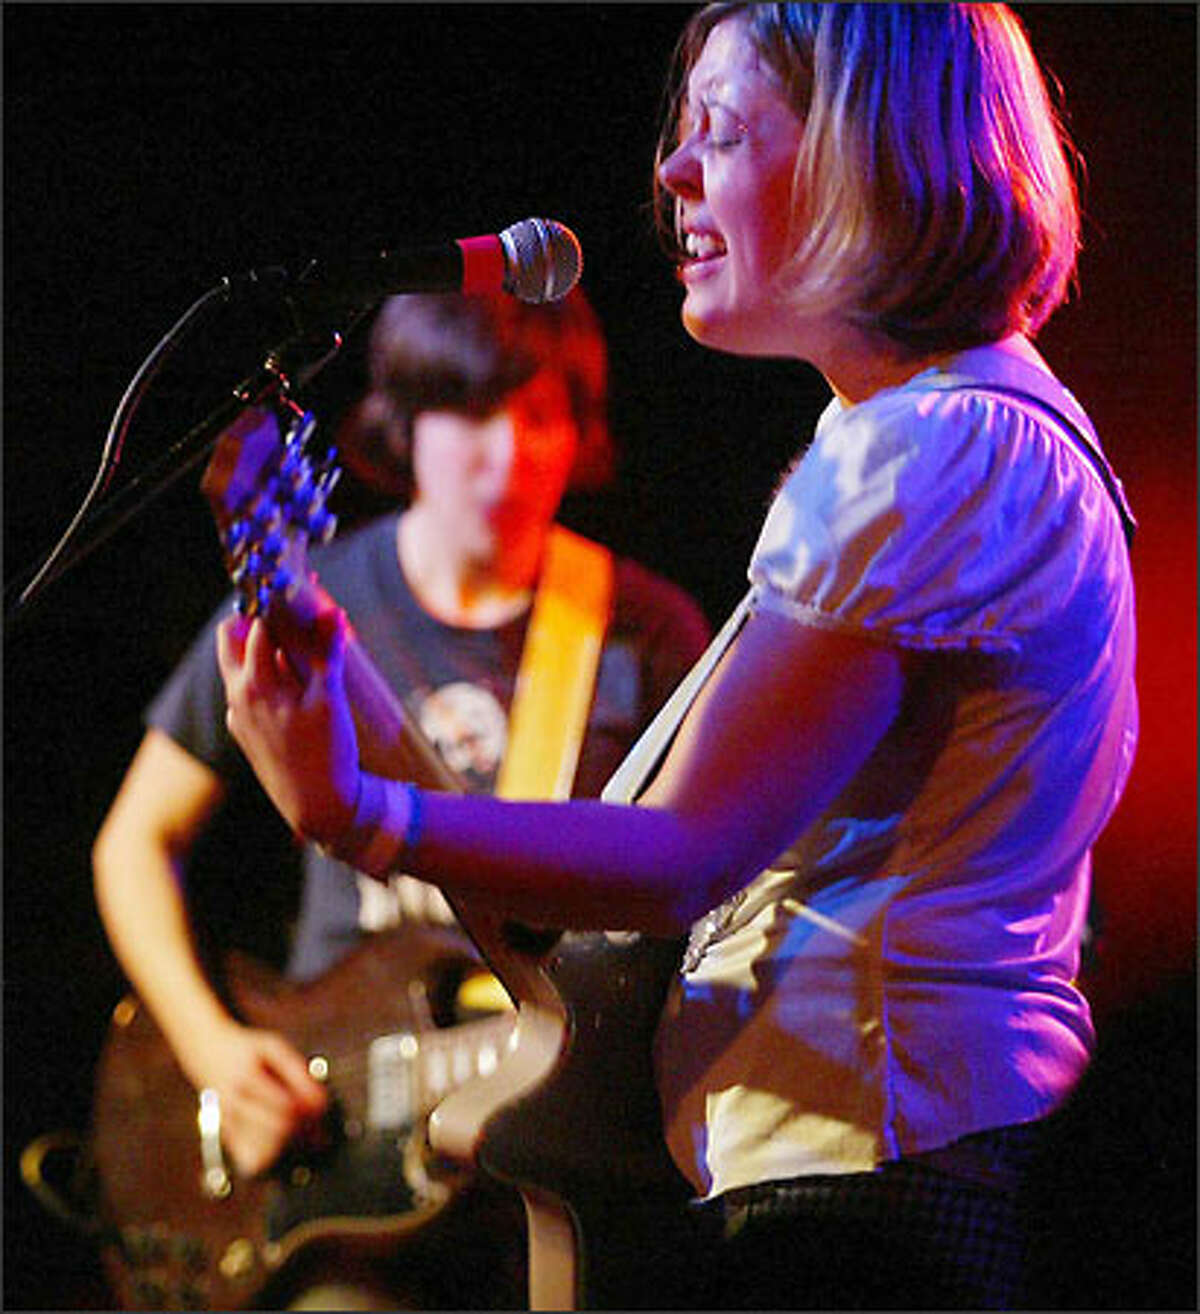 The homegirls of Sleater-Kinney are back for the first time in 10 years. They've already sold out two Seattle shows scheduled for May and added a third. Check out when and where they're performing and all the other big names headed our way.